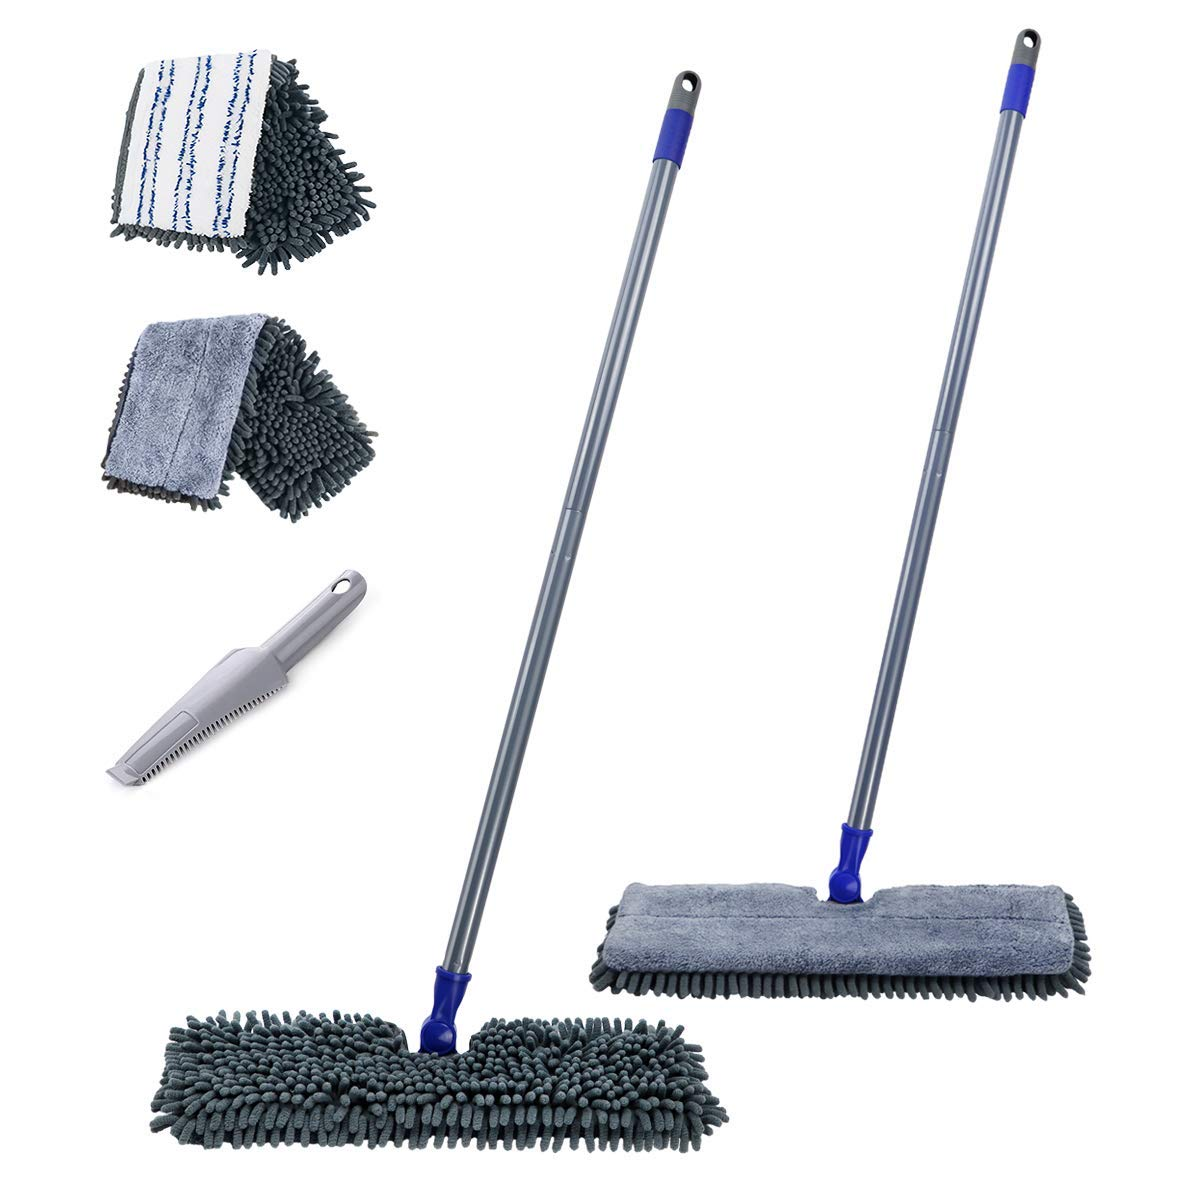 """Flat Mop with 2 Mop Pads Double Sided 16.8"""" Dust Mops for Hardwood Floors Microfiber Chenille Mop for Wet & Dry Use Masthome"""